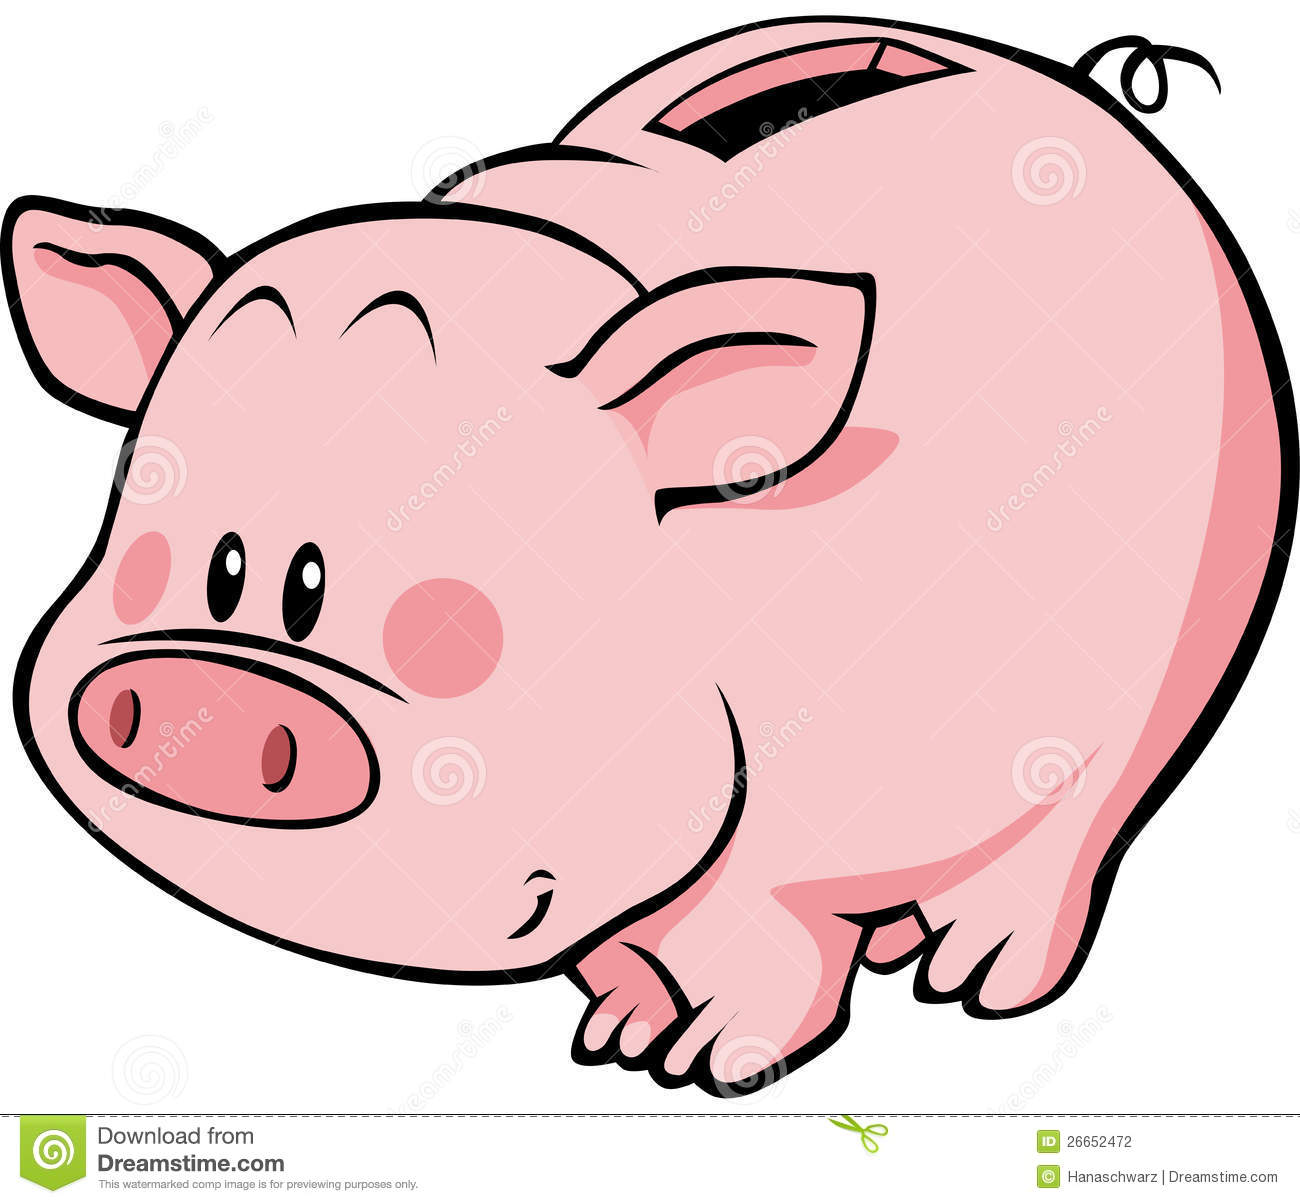 Cute Piggy Bank Clipart-cute piggy bank clipart-3